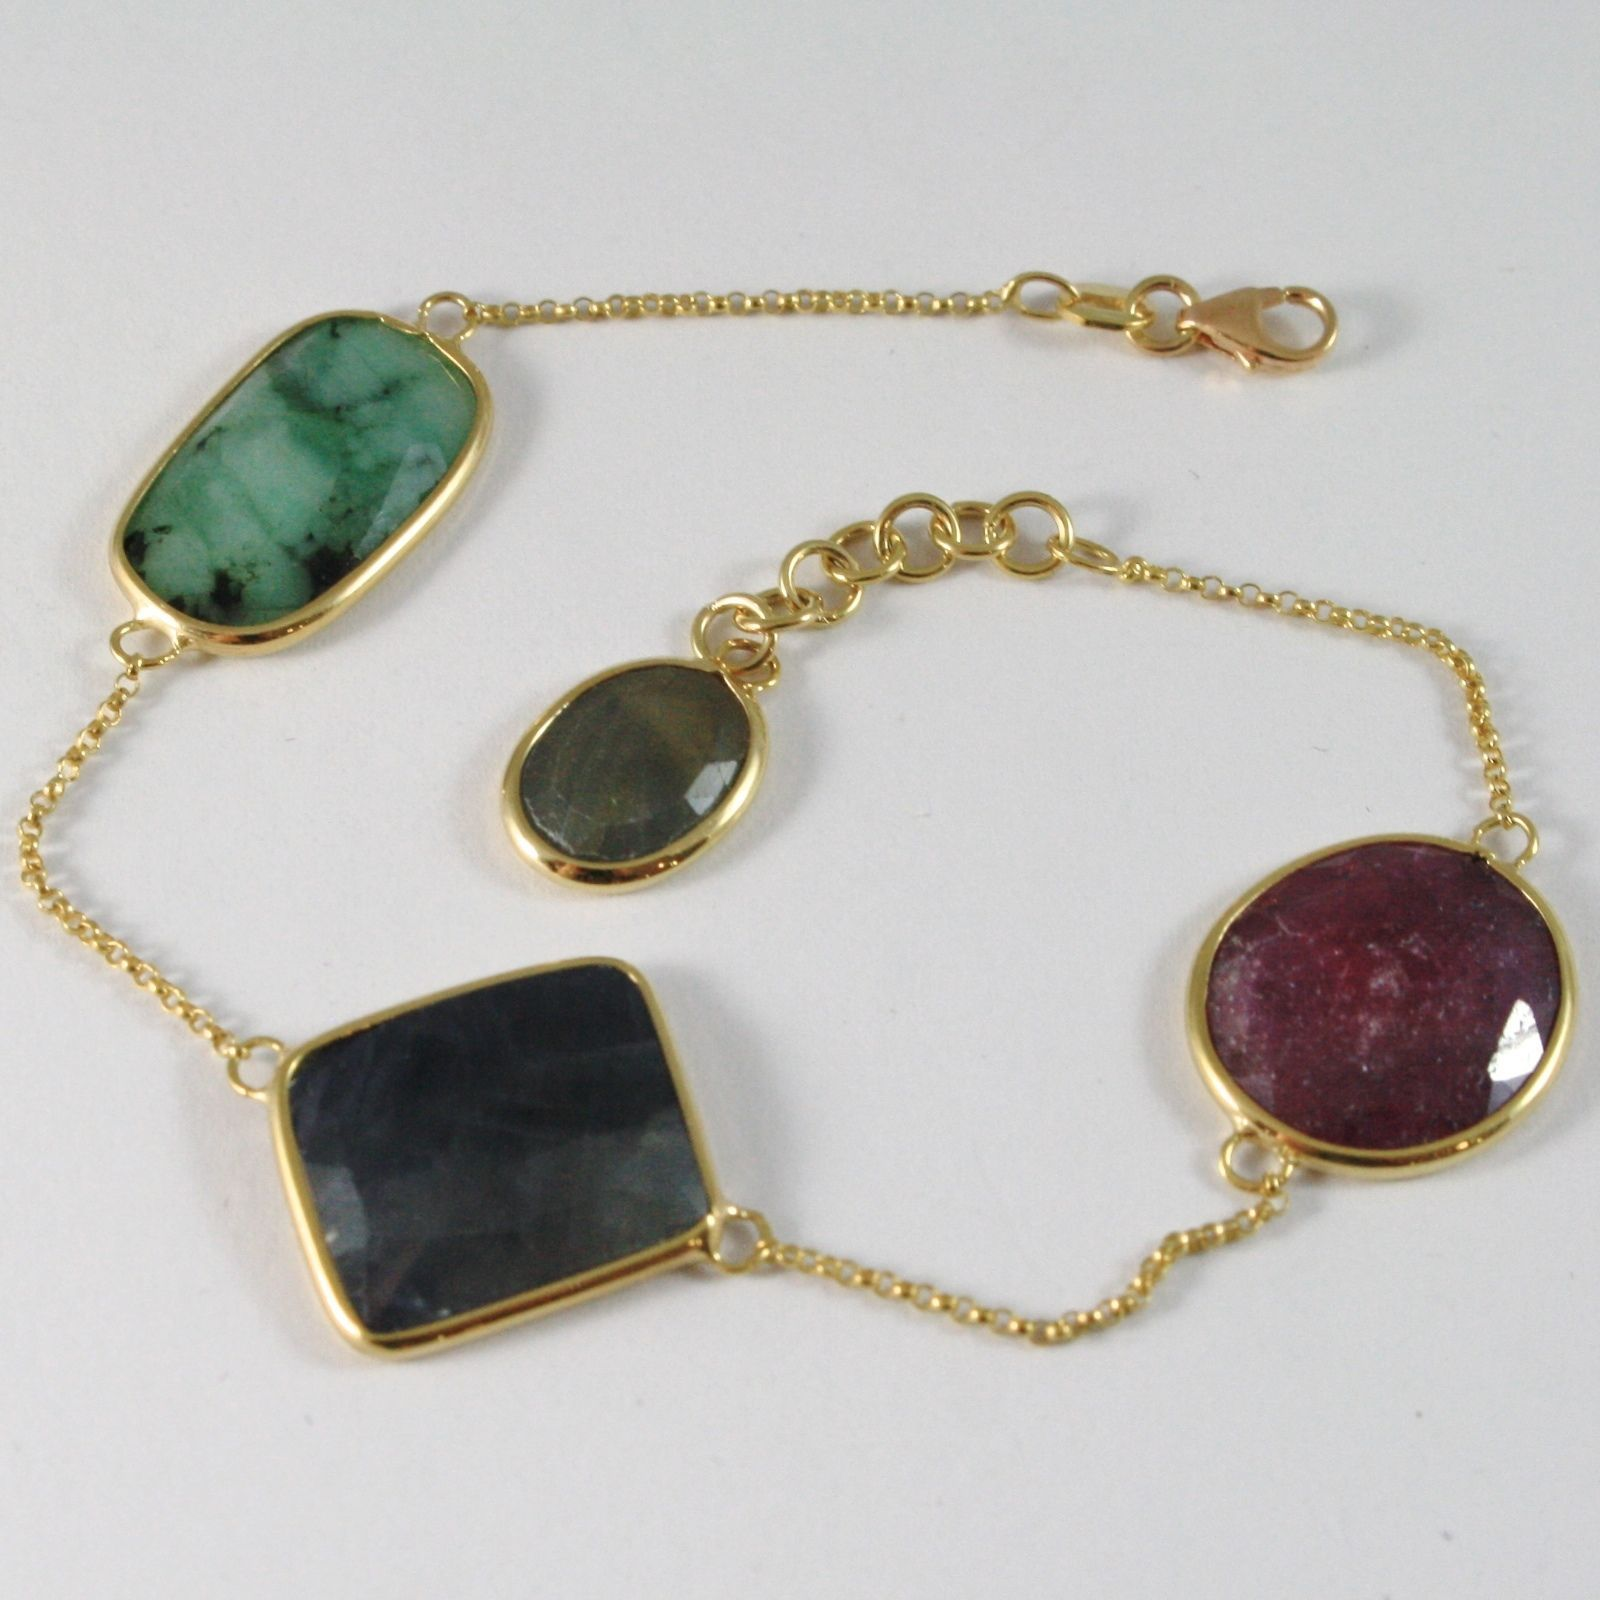 9K YELLOW GOLD BRACELET WITH FACETED RUBY, BLUE SAPPHIRE AND GREEN EMERALD